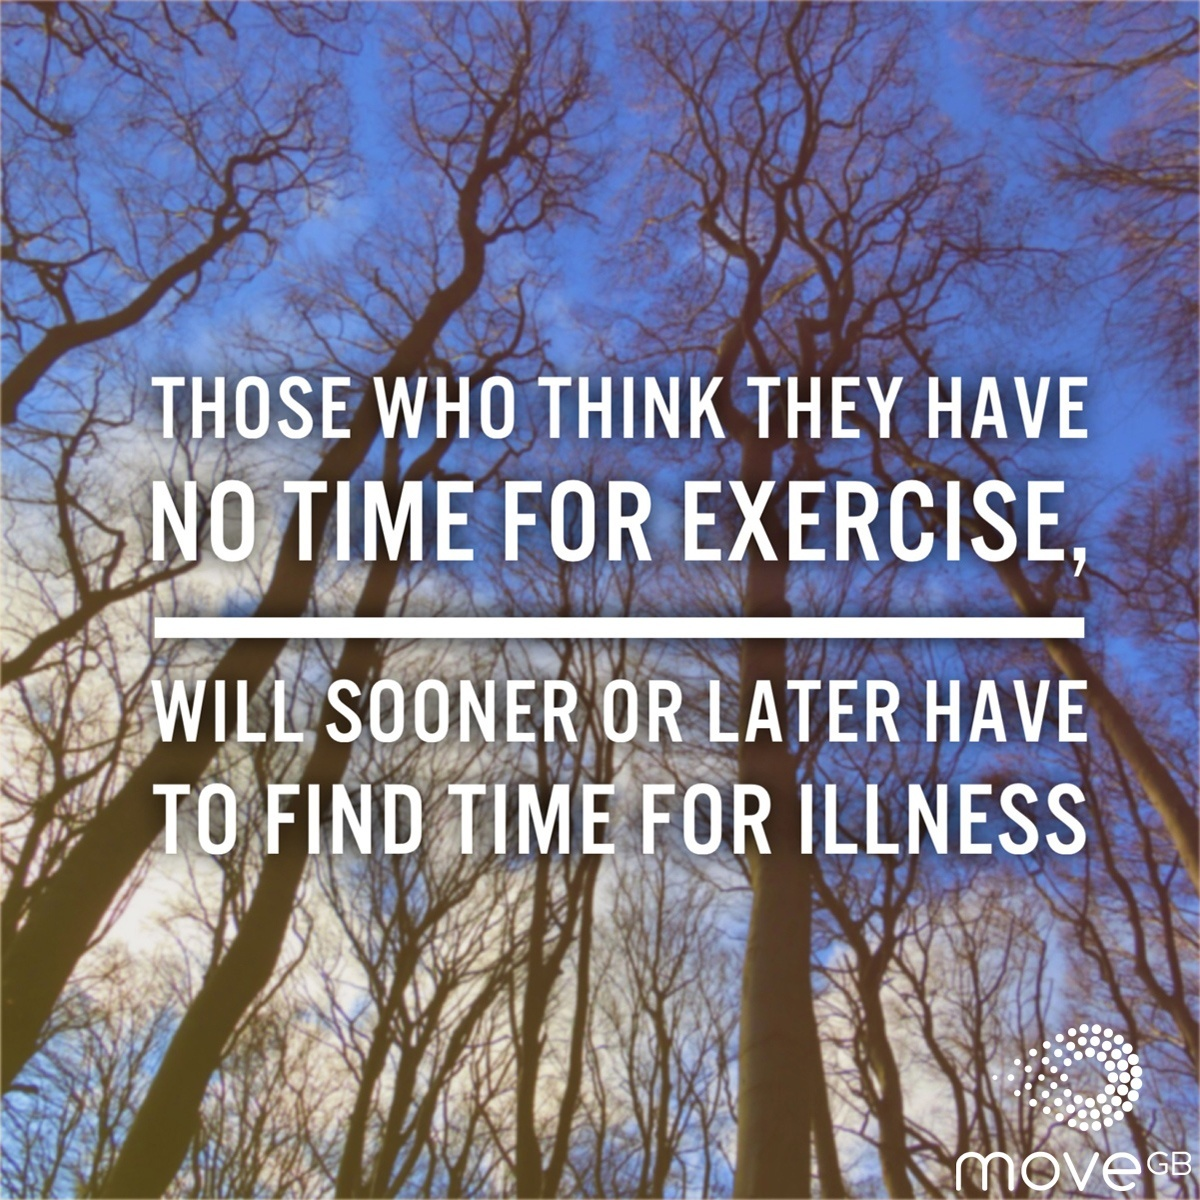 Those who think they have no time for exercise, will sooner or later have to find time for illness